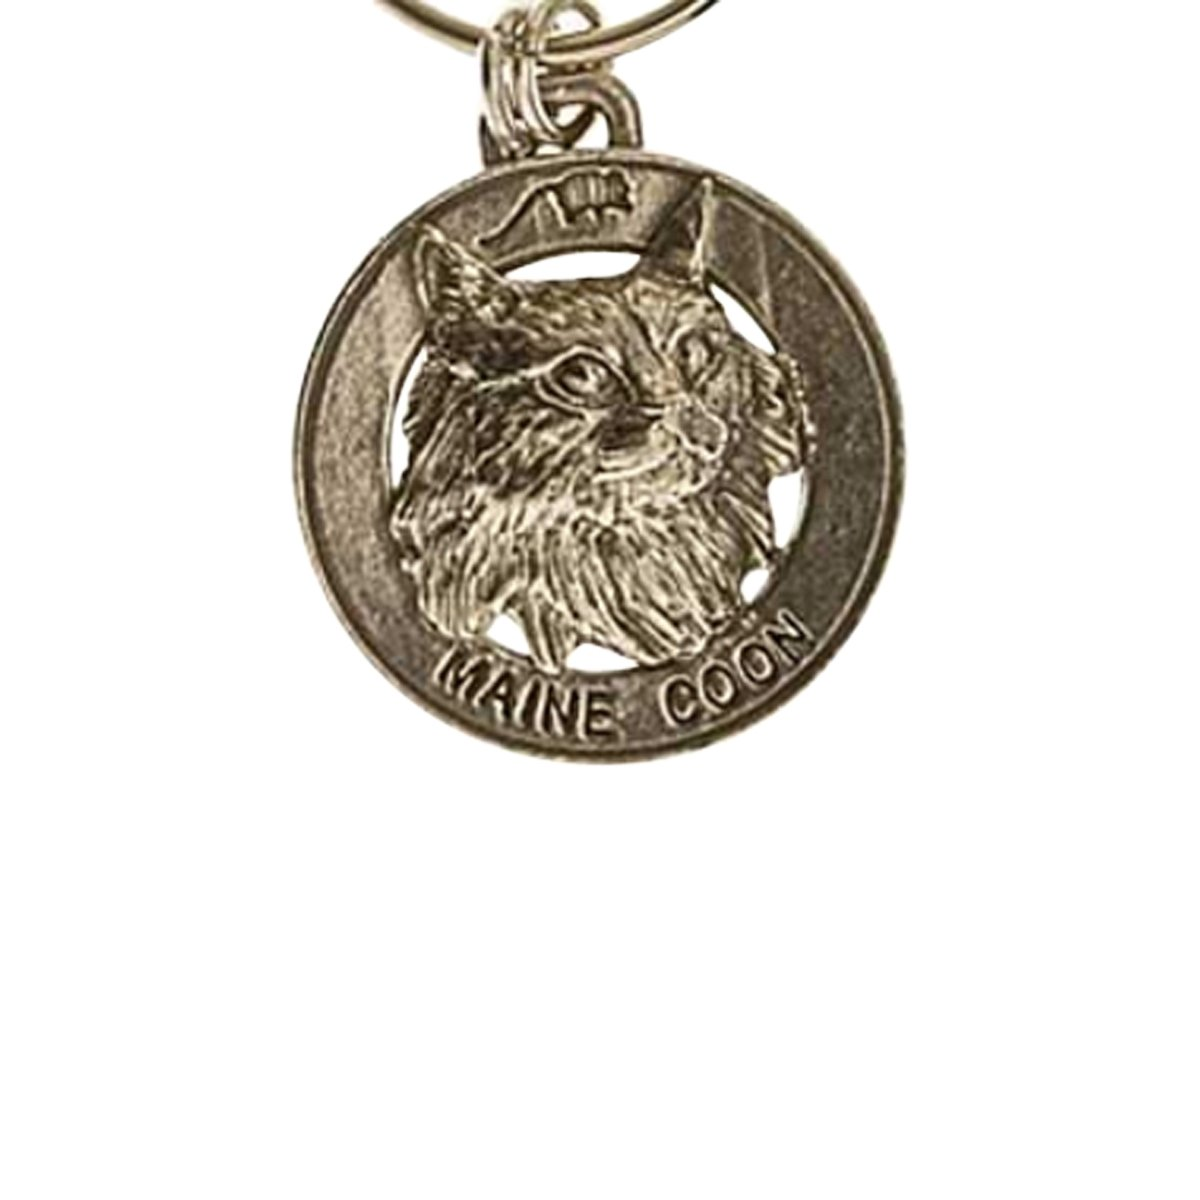 Creative Pewter Designs, Pewter Maine Coon Cat Key Chain, Antiqued Finish, CK005